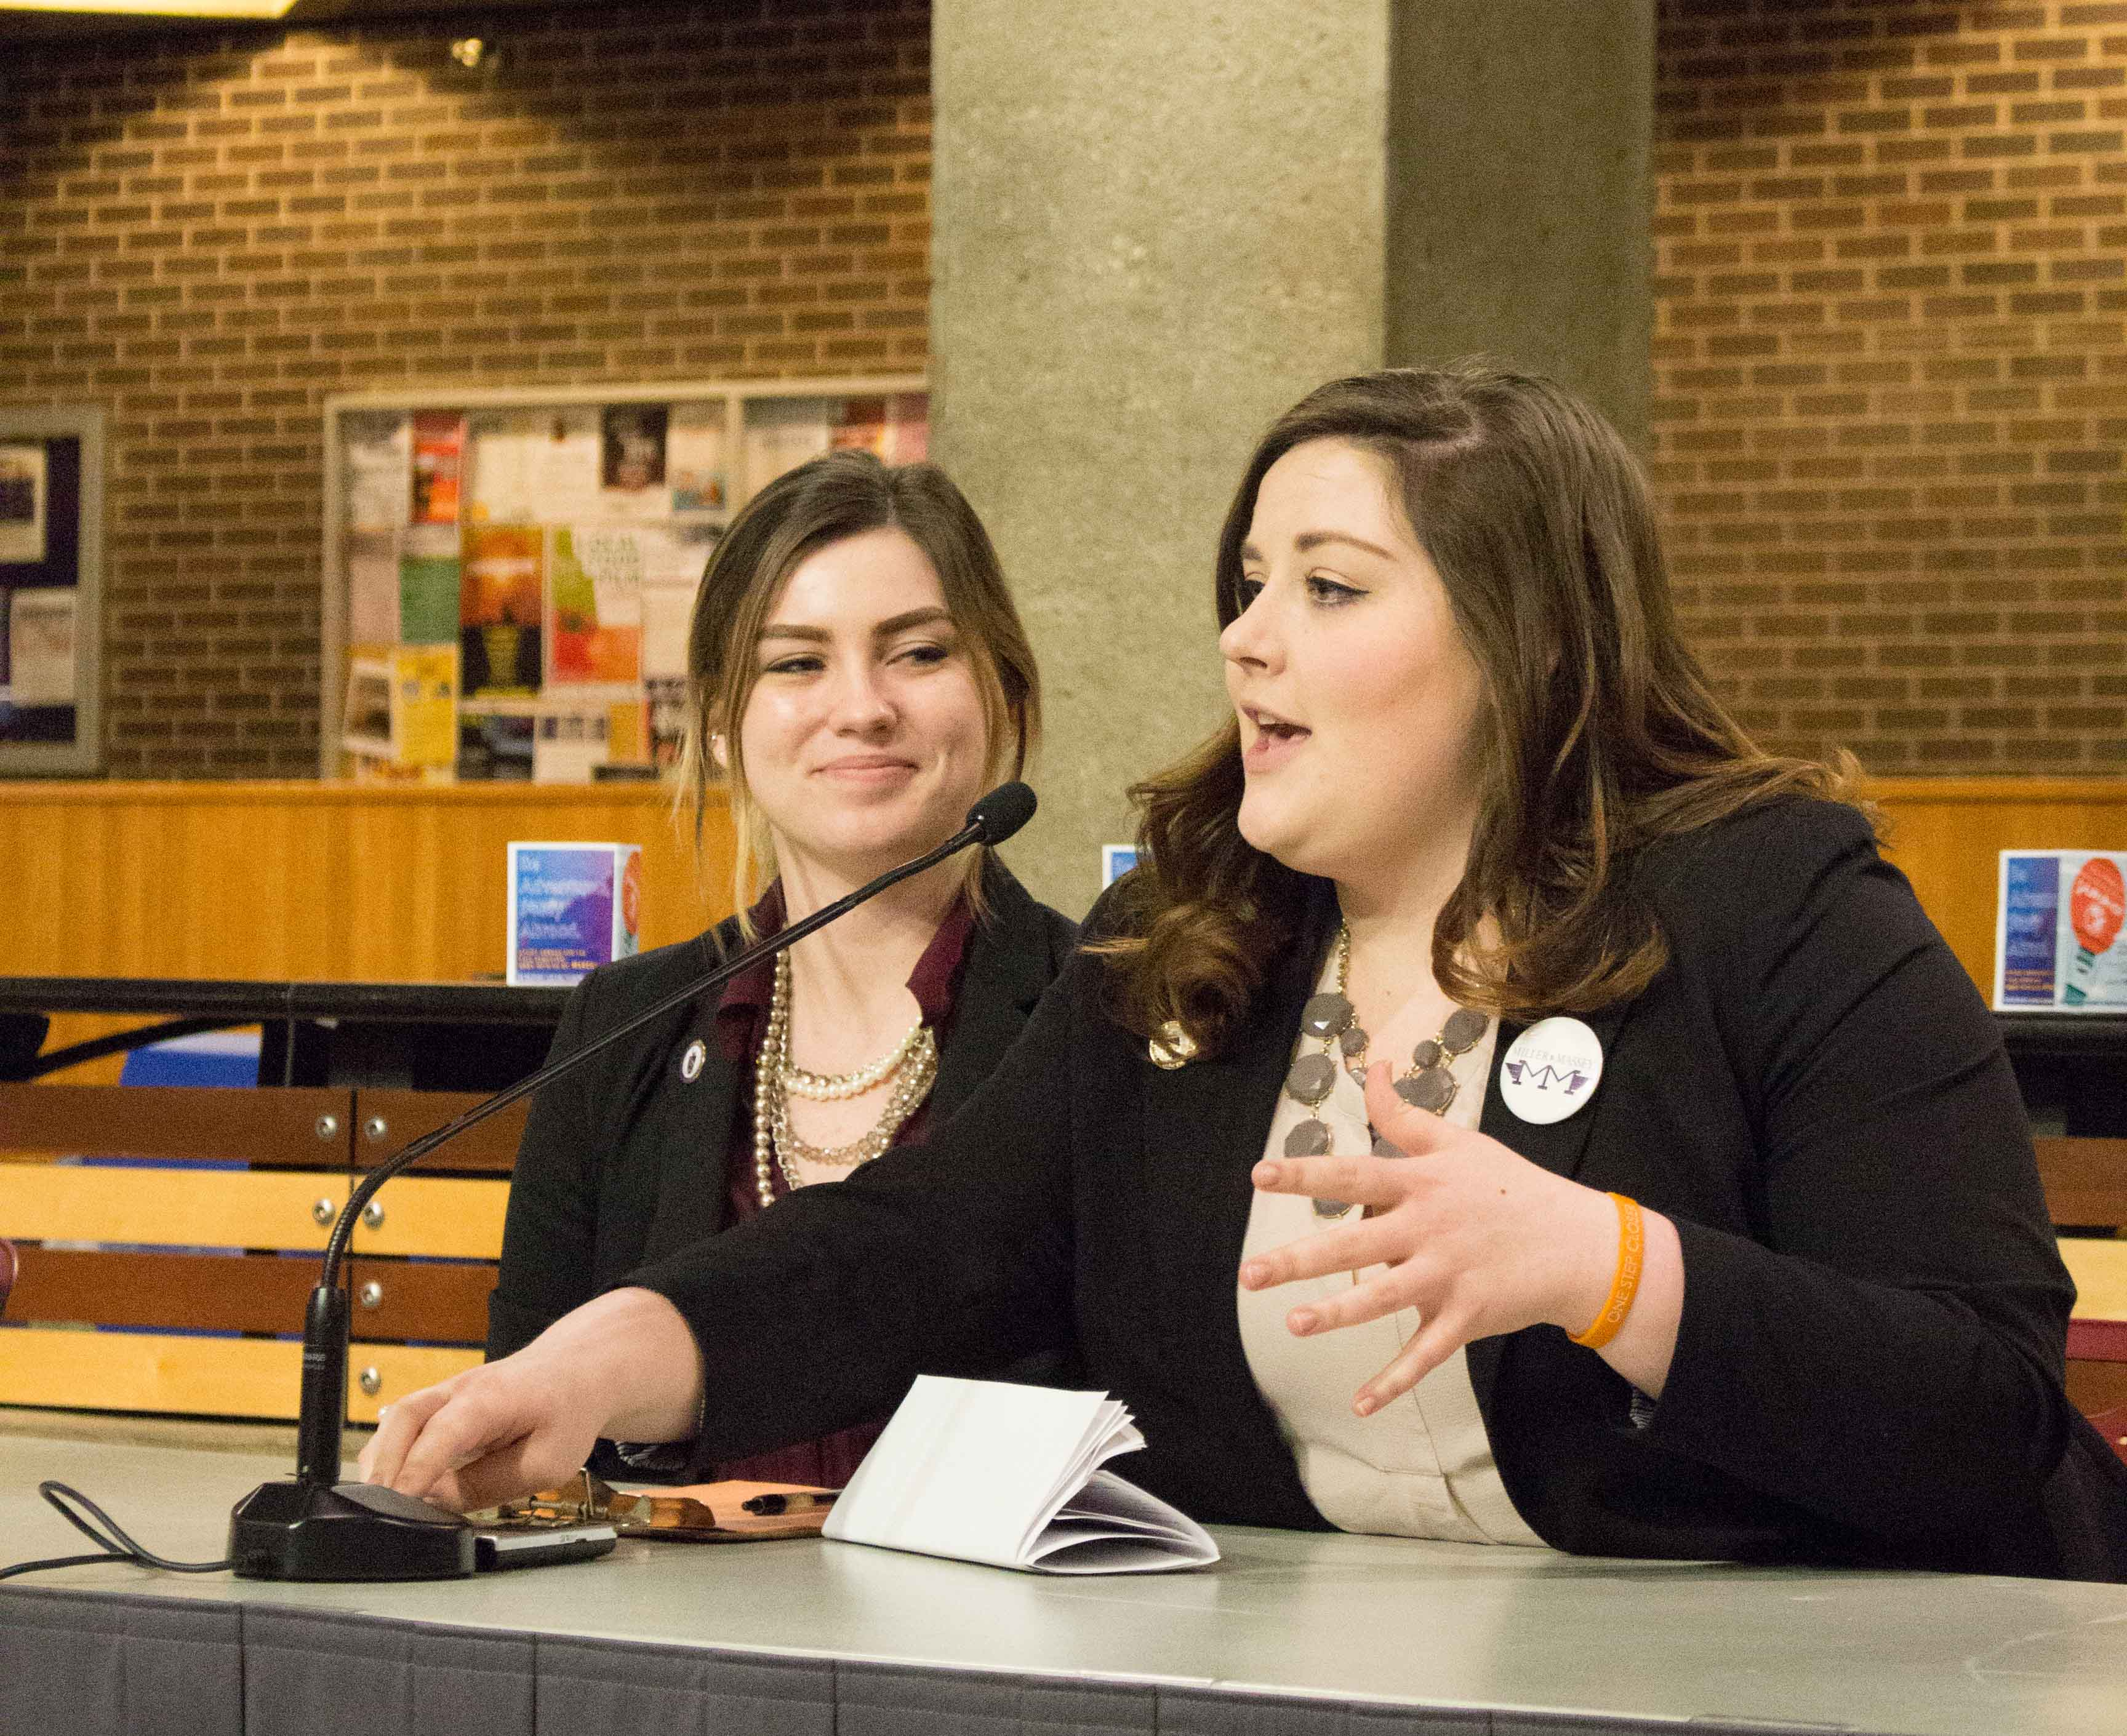 Vice Presidential candidate Danielle Massey (left) and presidential candidate Maggie Miller (right). Evans favors Miller and Massey's platform.